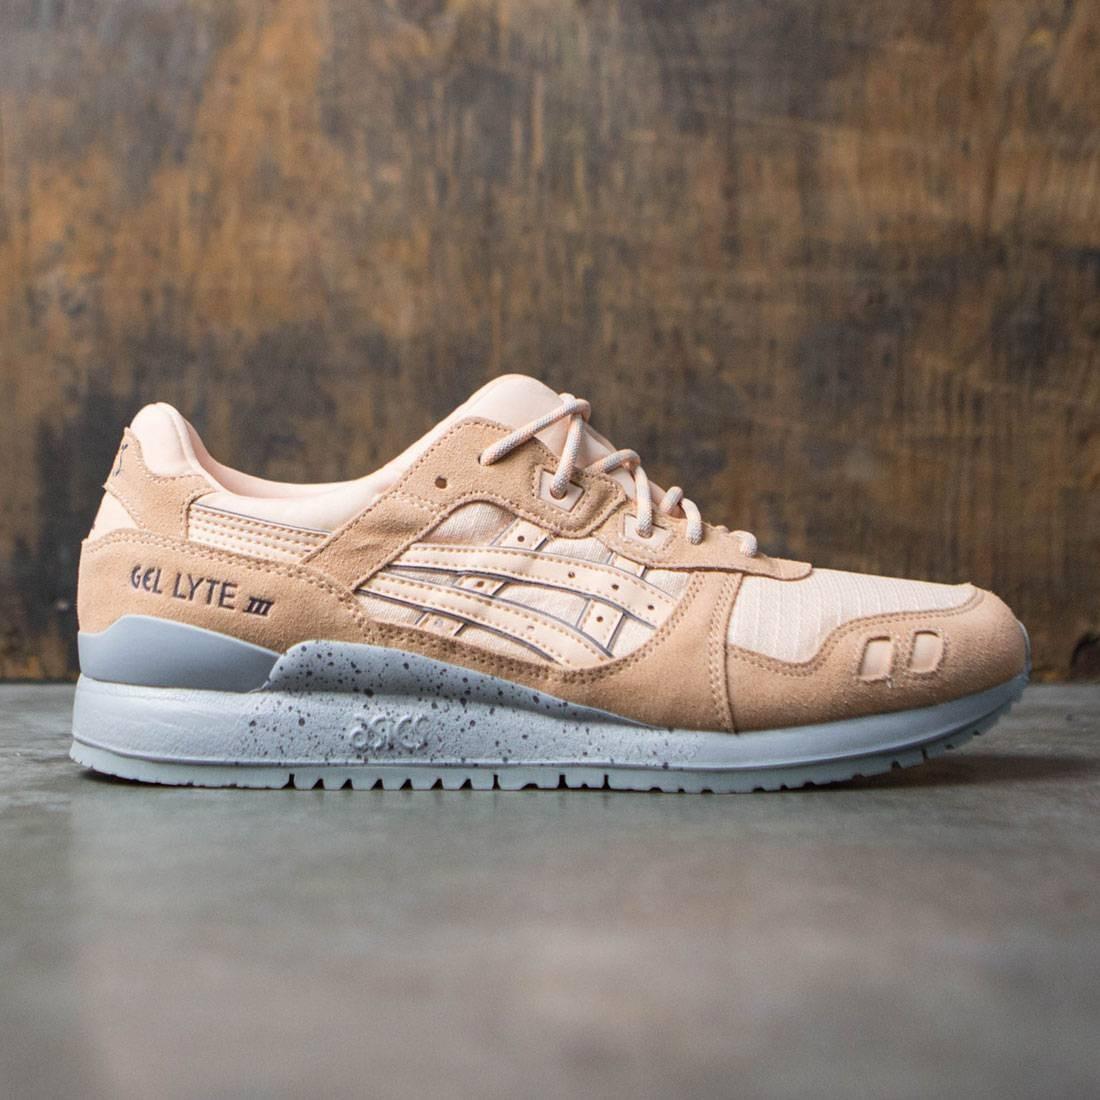 Lyte Whisper Asics Gel Basses Tiger Baskets Iii Pink 534jLRA